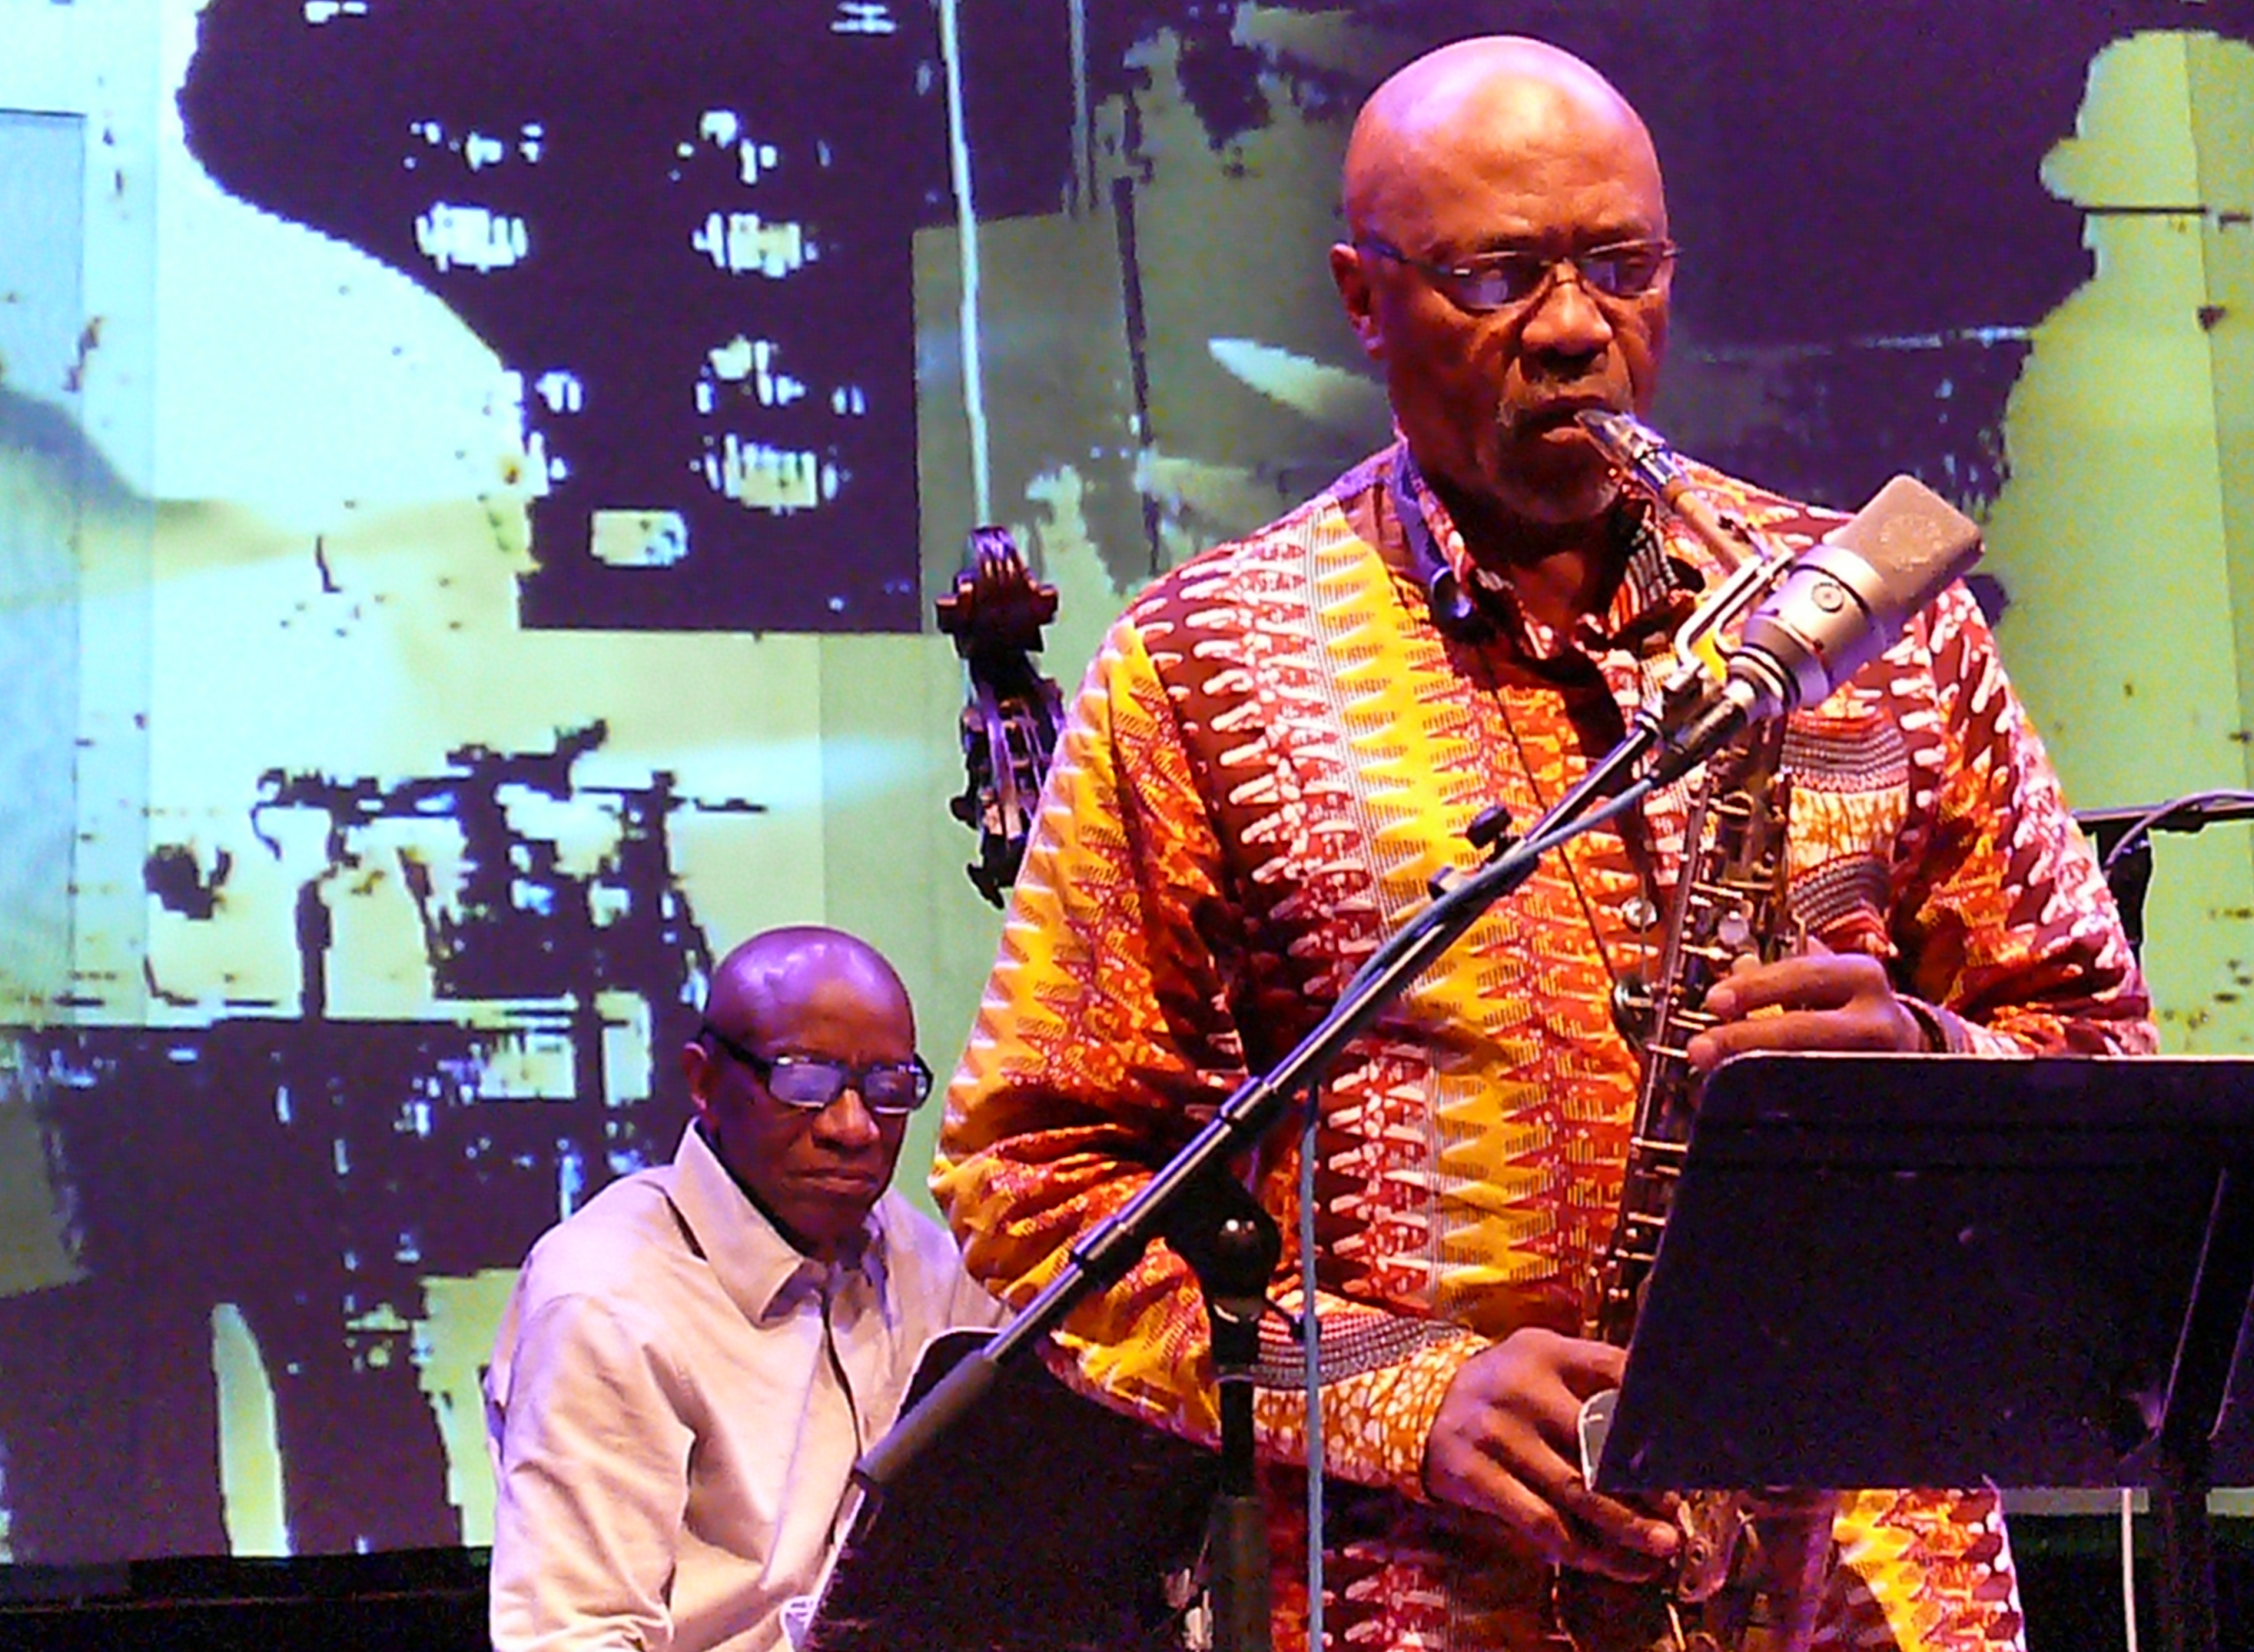 Reggie Workman and Oliver Lake at the Vision Festival in June 2012